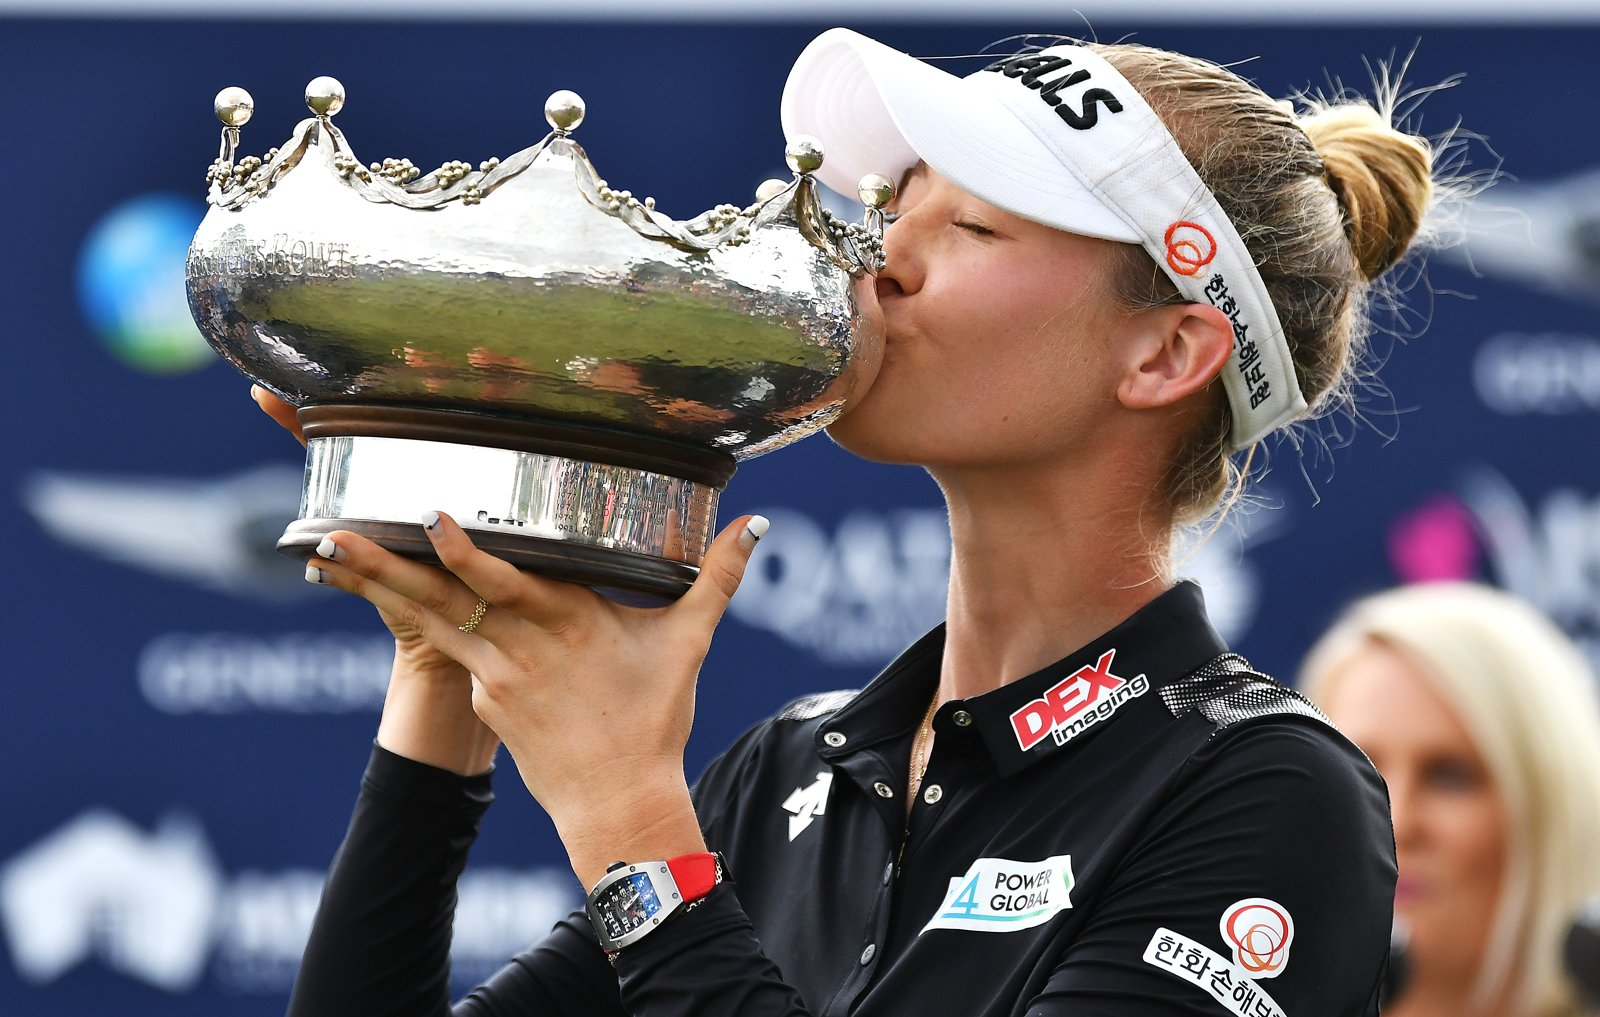 NELLY KORDA IS NEWLY A RICHARD MILLE PARTNER